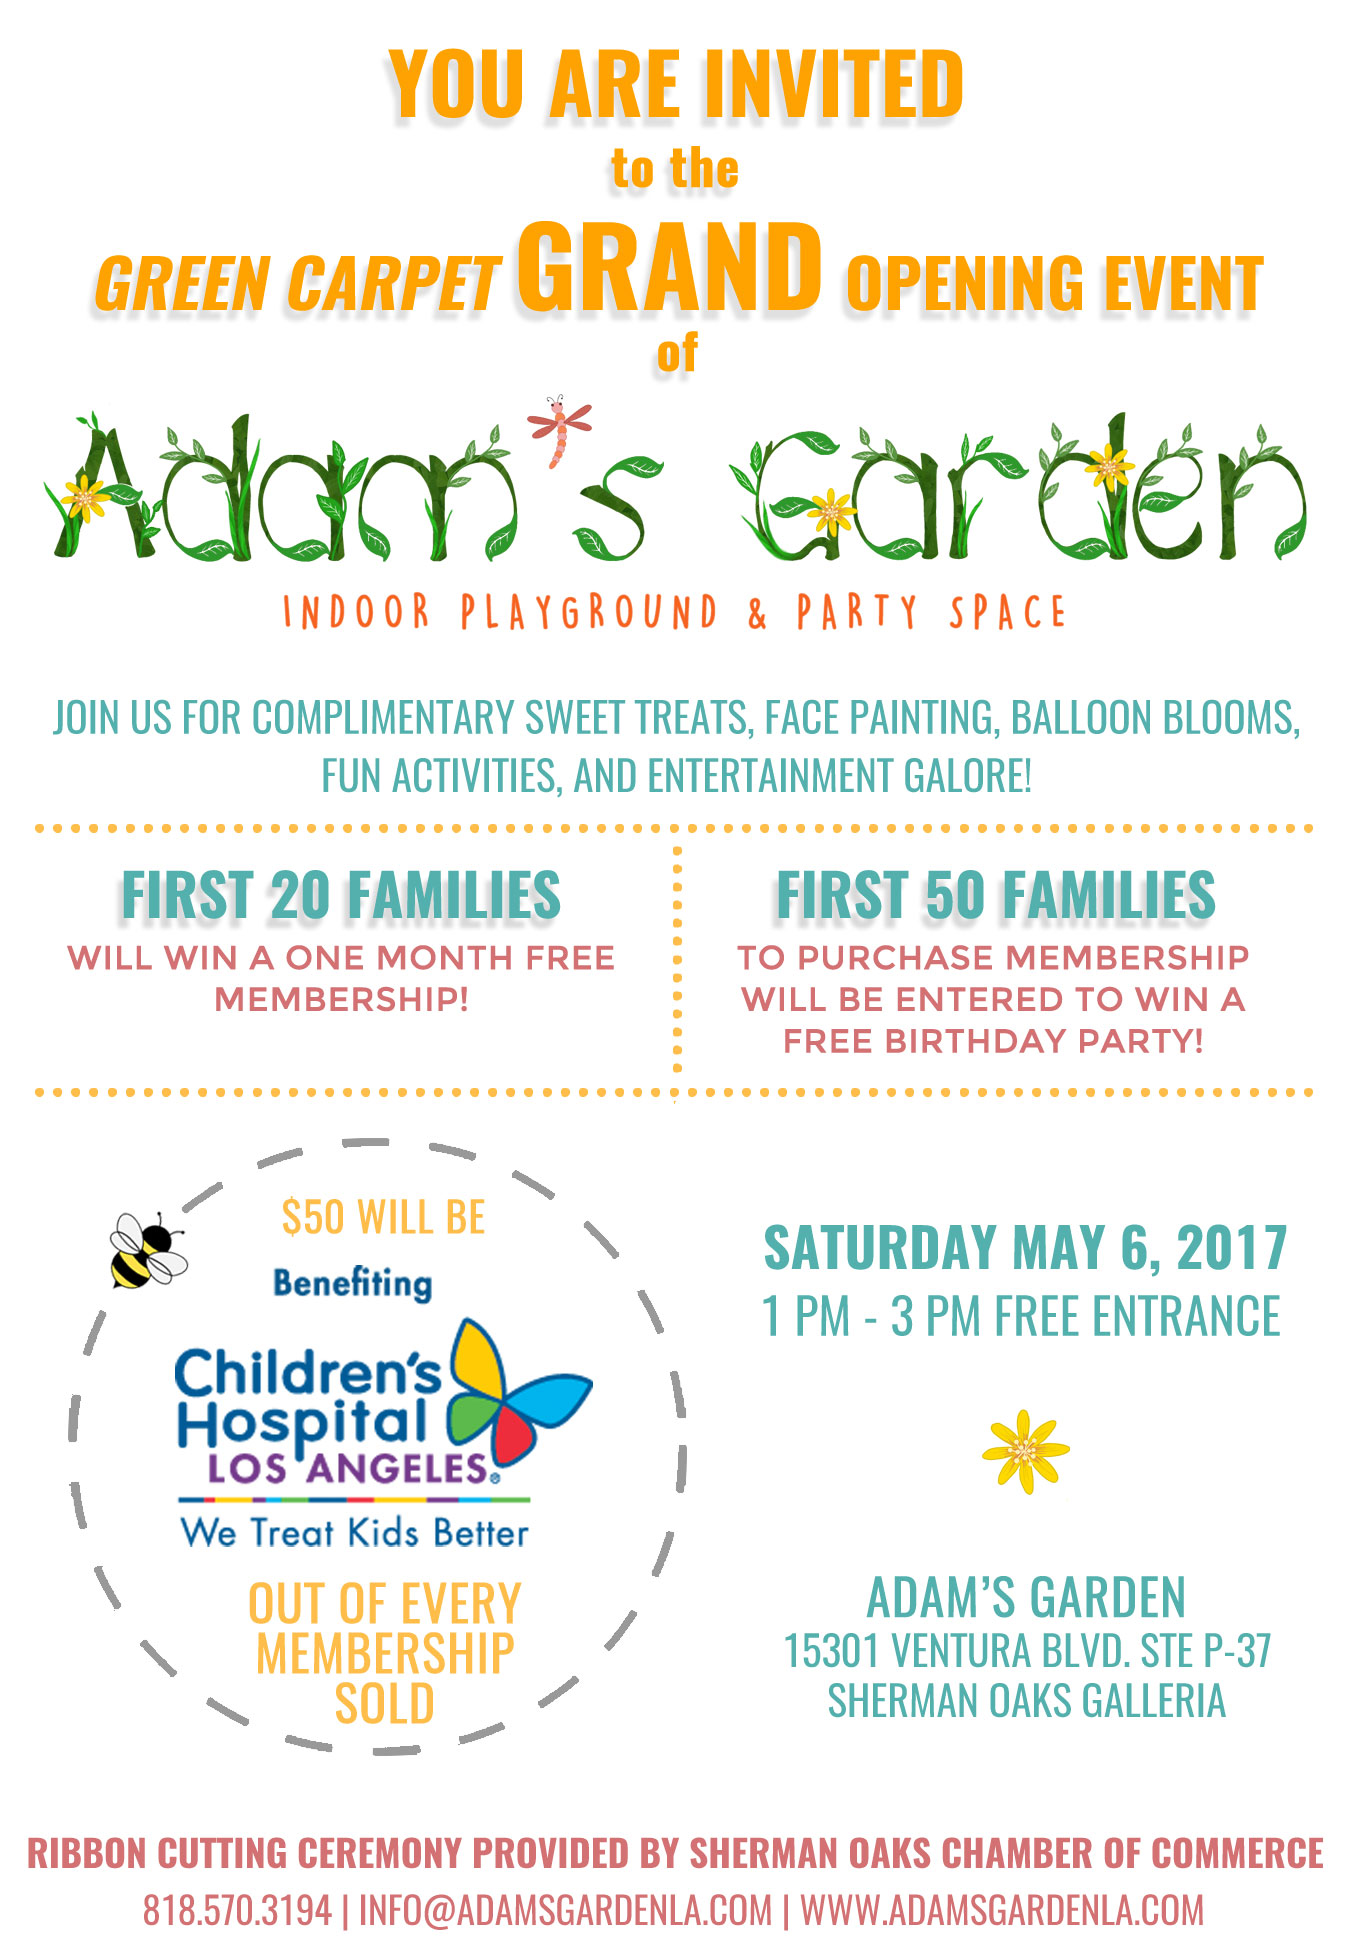 Adams garden launches first location at sherman oaks galleria with invitation stopboris Gallery